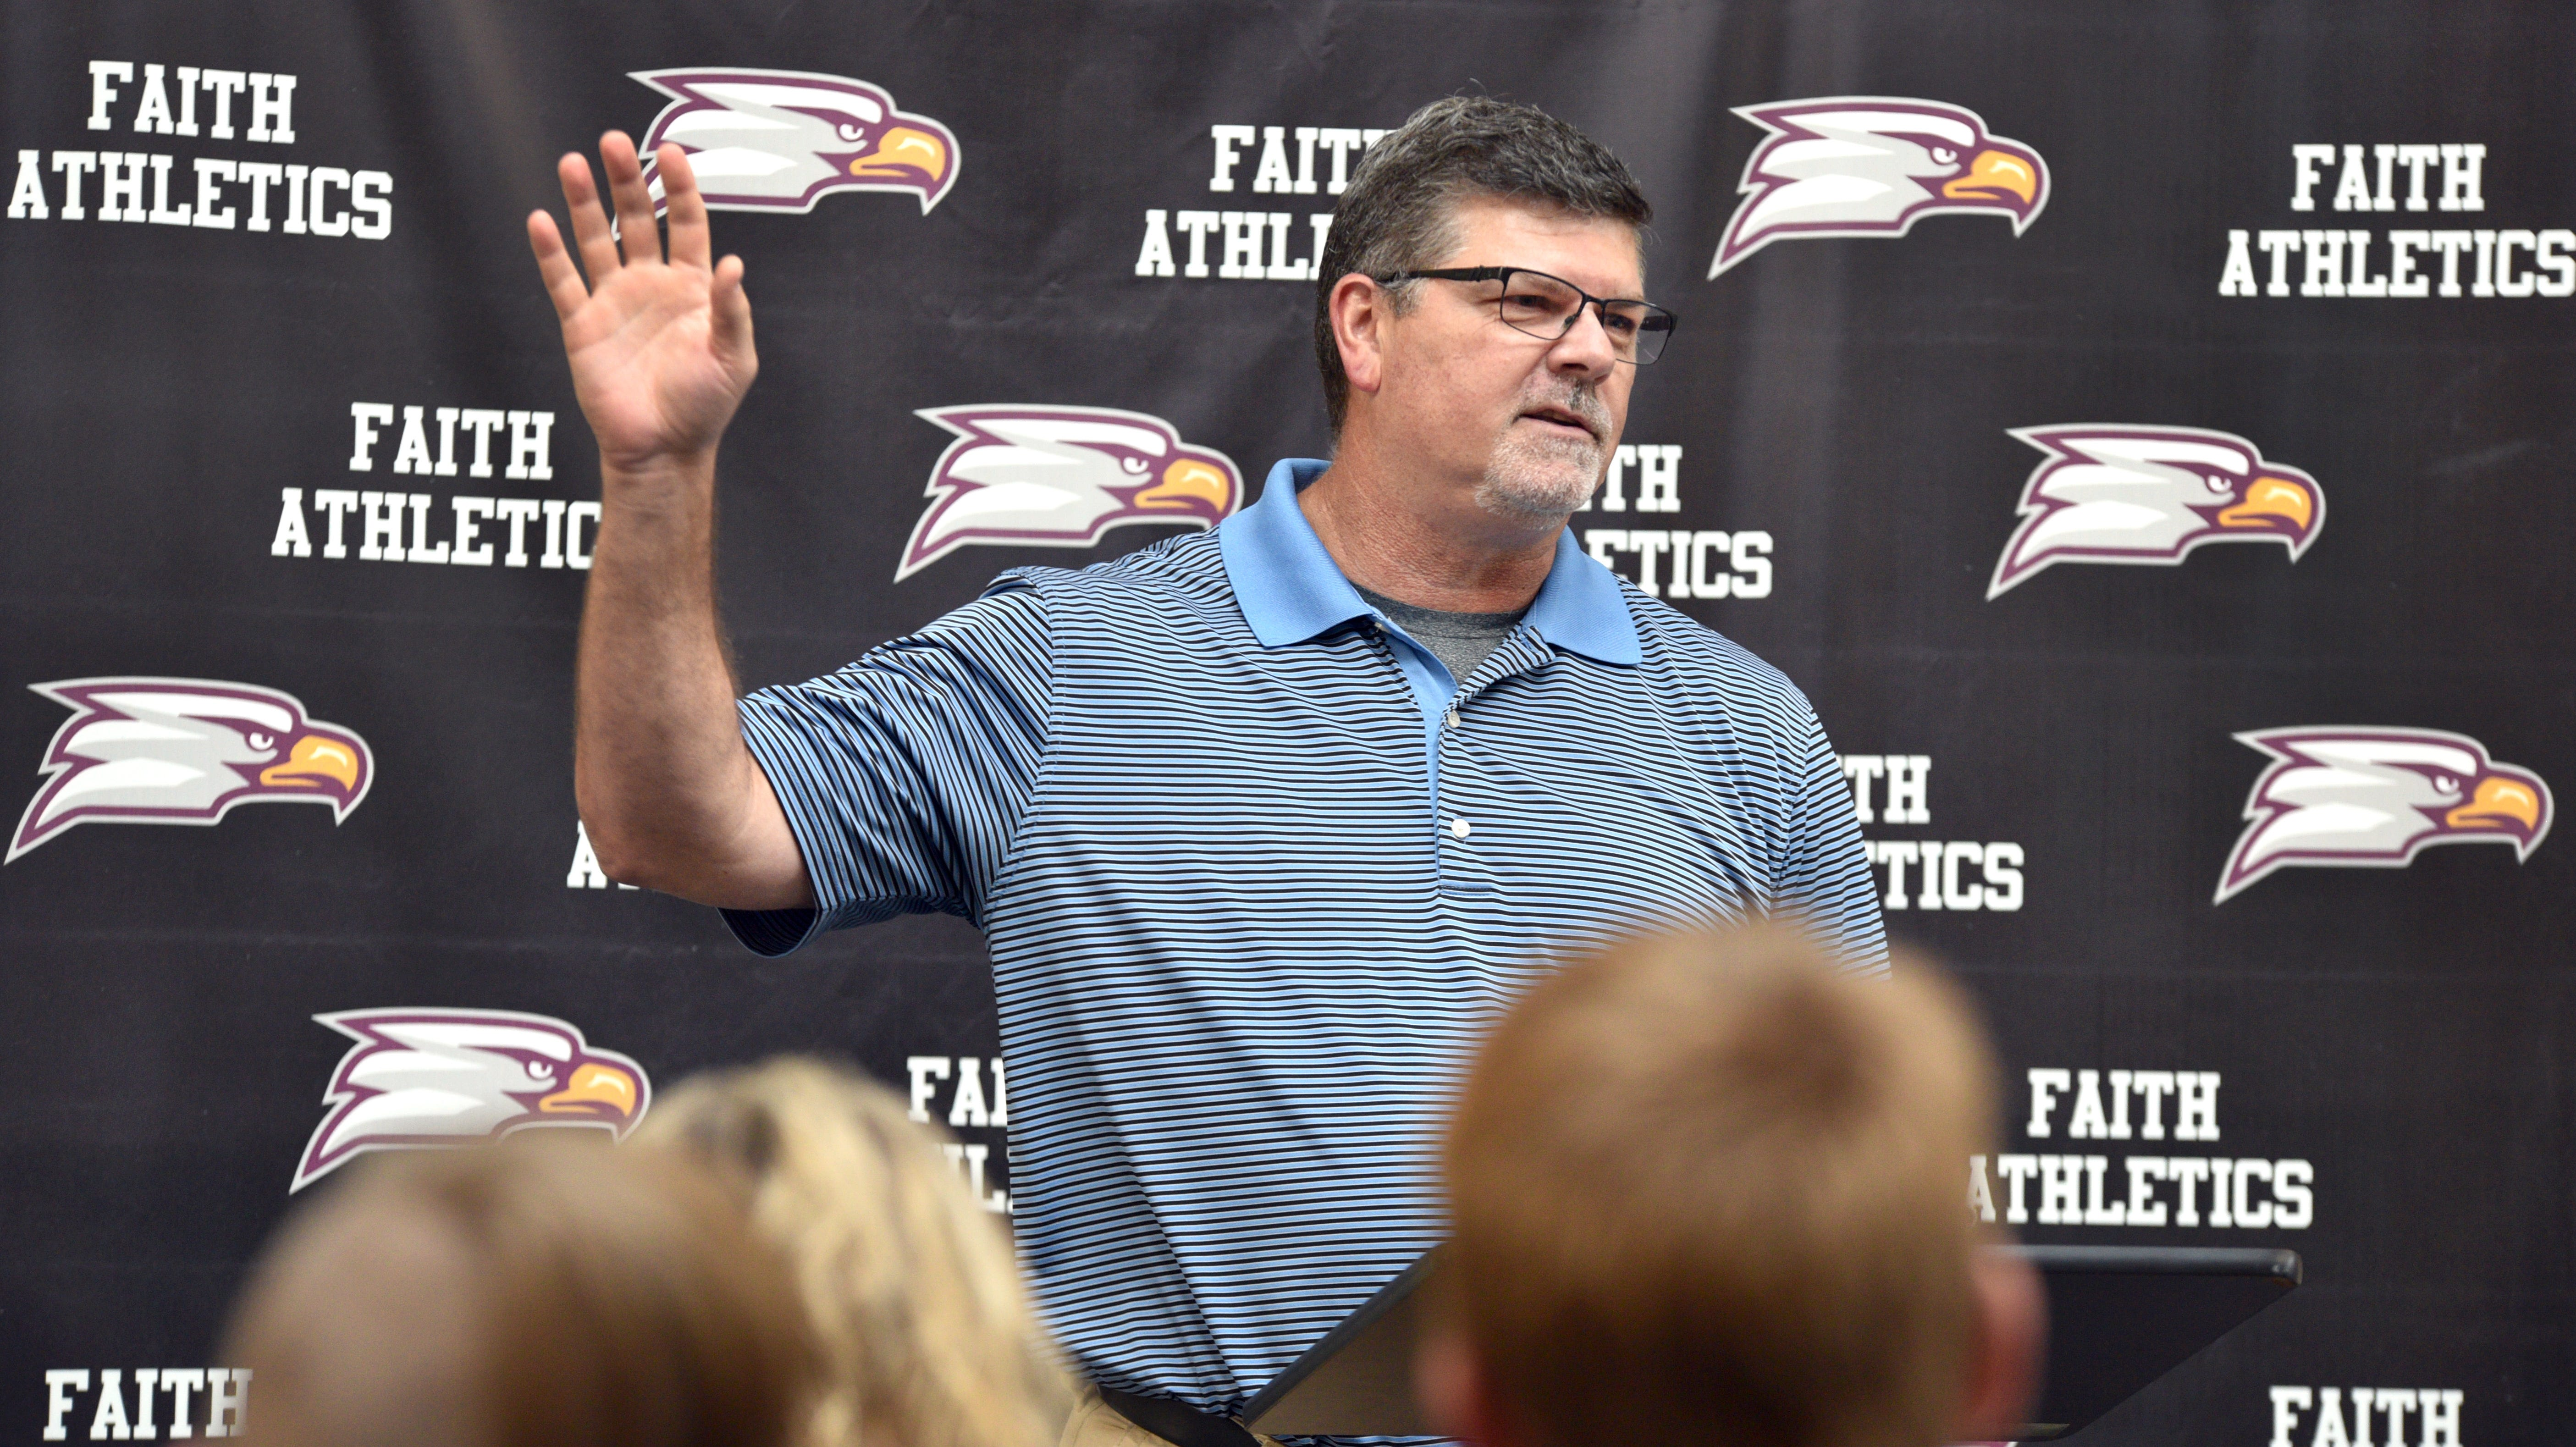 Dan Hickman was introduced as the next varsity baseball coach at Faith Christian School in Lafayette on Thursday September 20, 2018. Hickman brings decades of experience to the position from youth ball all the way through high school.  As part of his resume, he organized and administrated the Babe Ruth program in Rensselaer. Hickman also brings a strong desire to mentor young men and help them grow into leaders in the community.